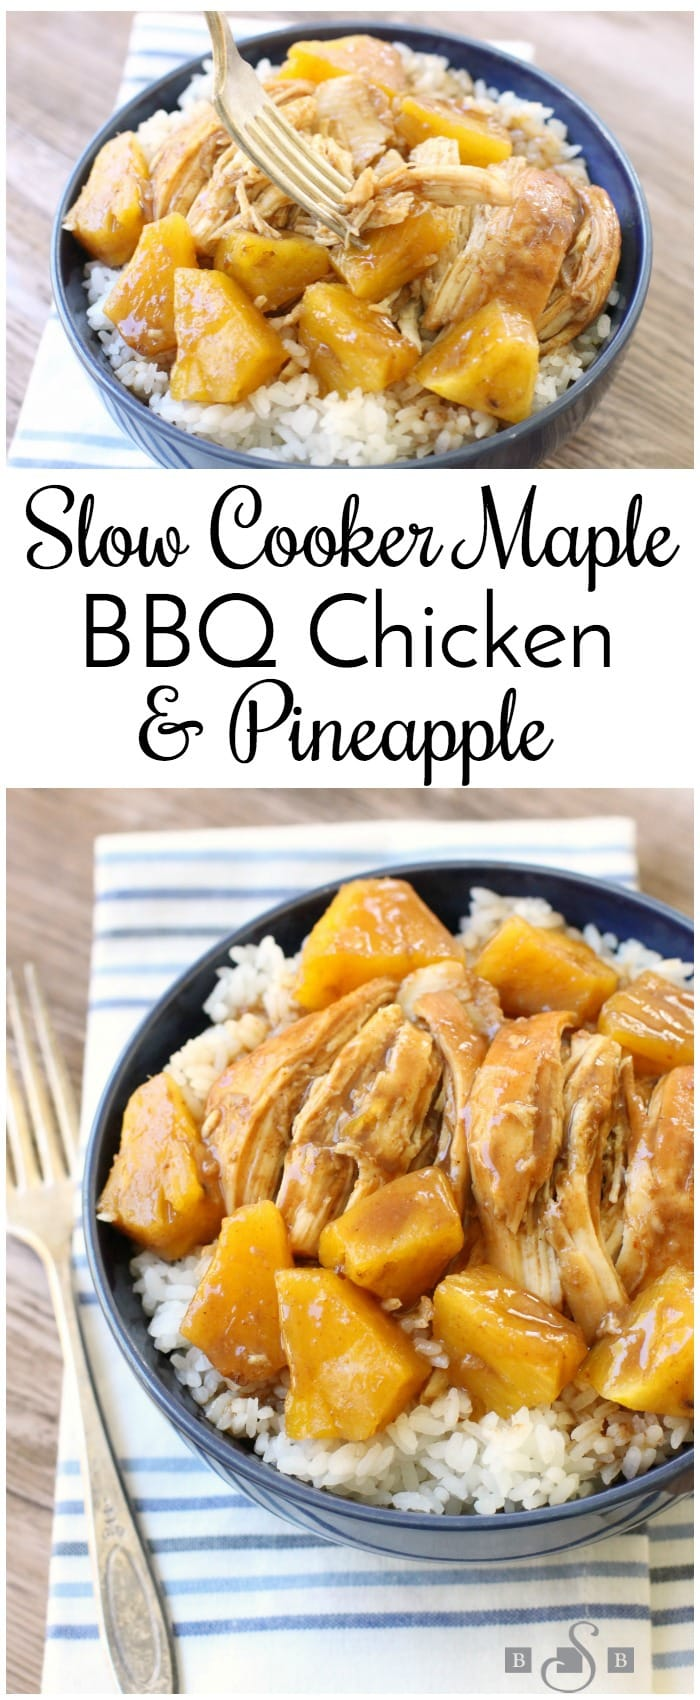 Slow Cooker BBQ Chicken is sweet, tangy and super easy to make. Add in pineapple and serve over rice for a complete chicken dinner.